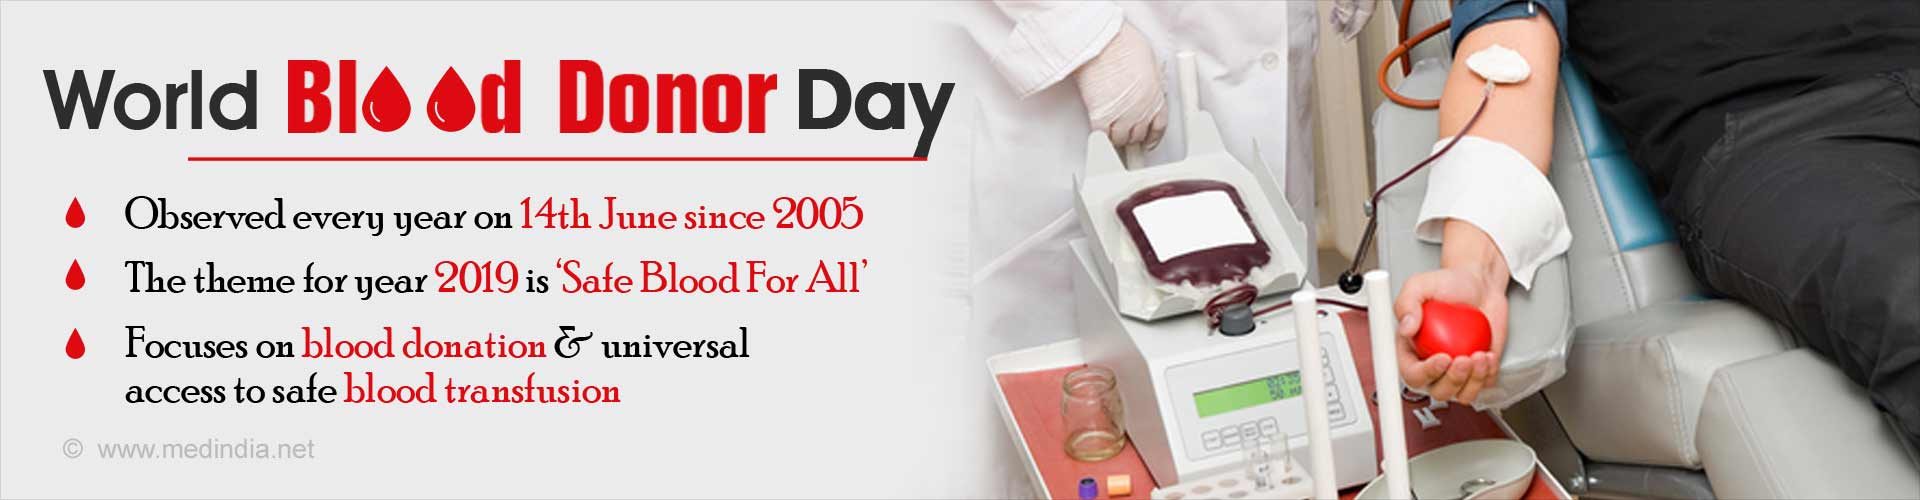 World Blood Donor Day – Safe Blood for All